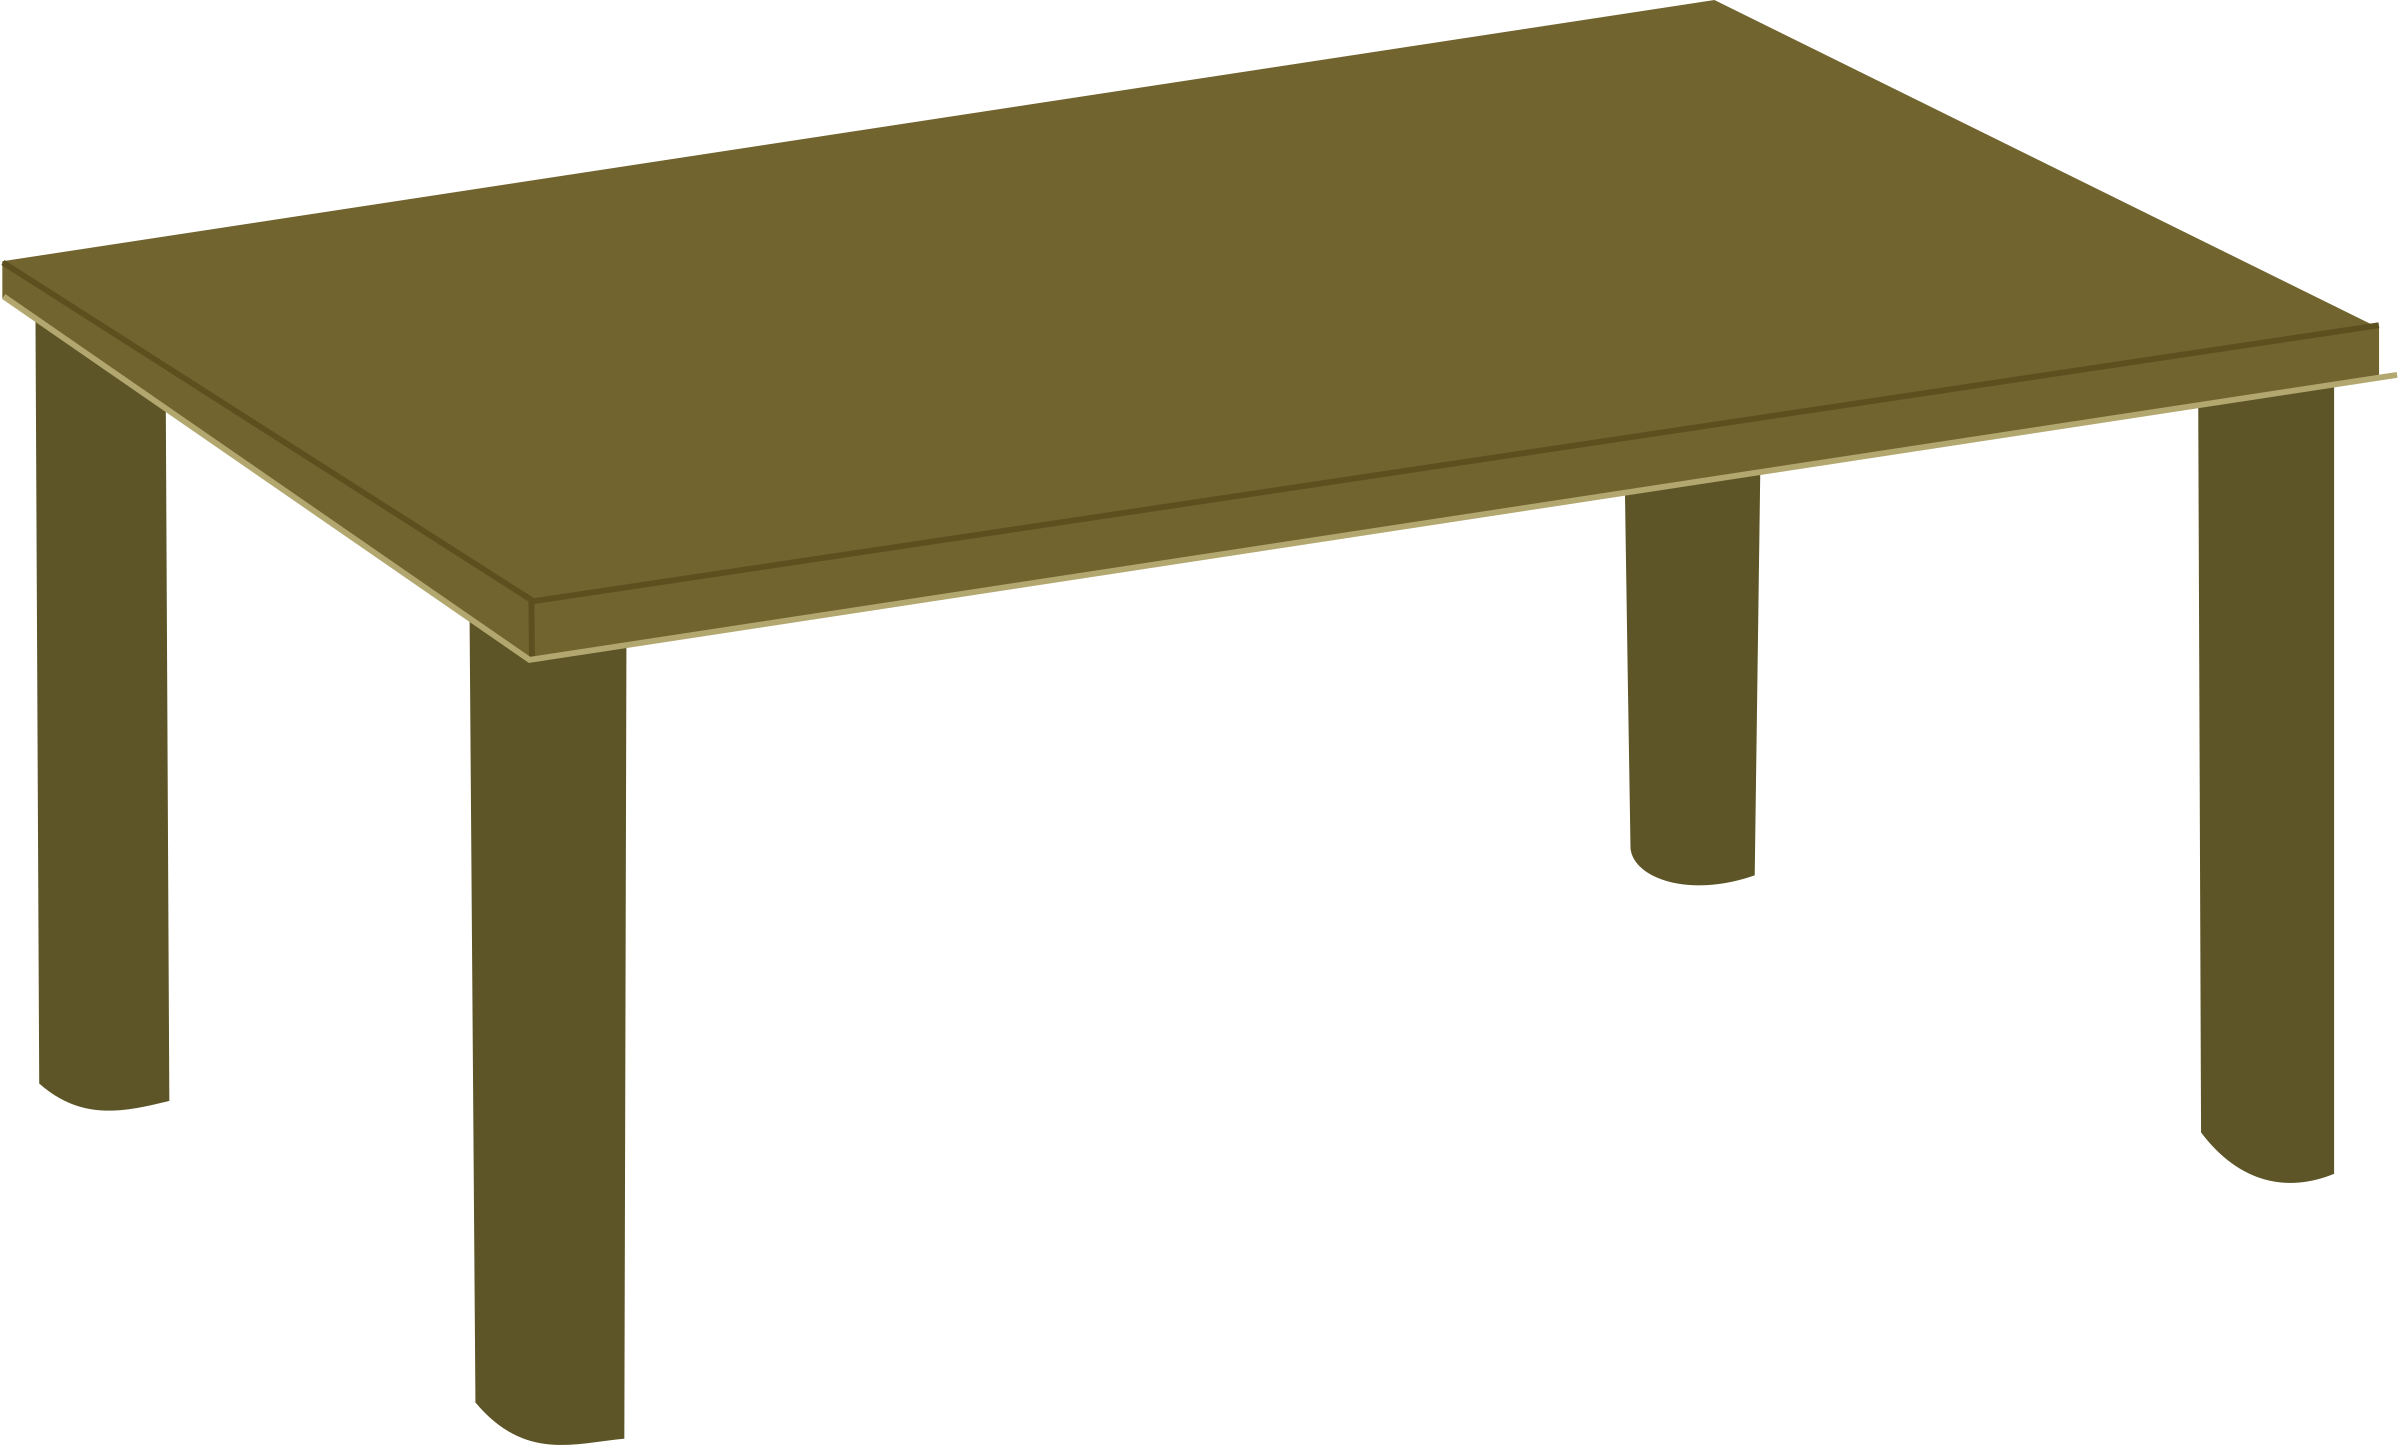 Wooden table by Rfc1394